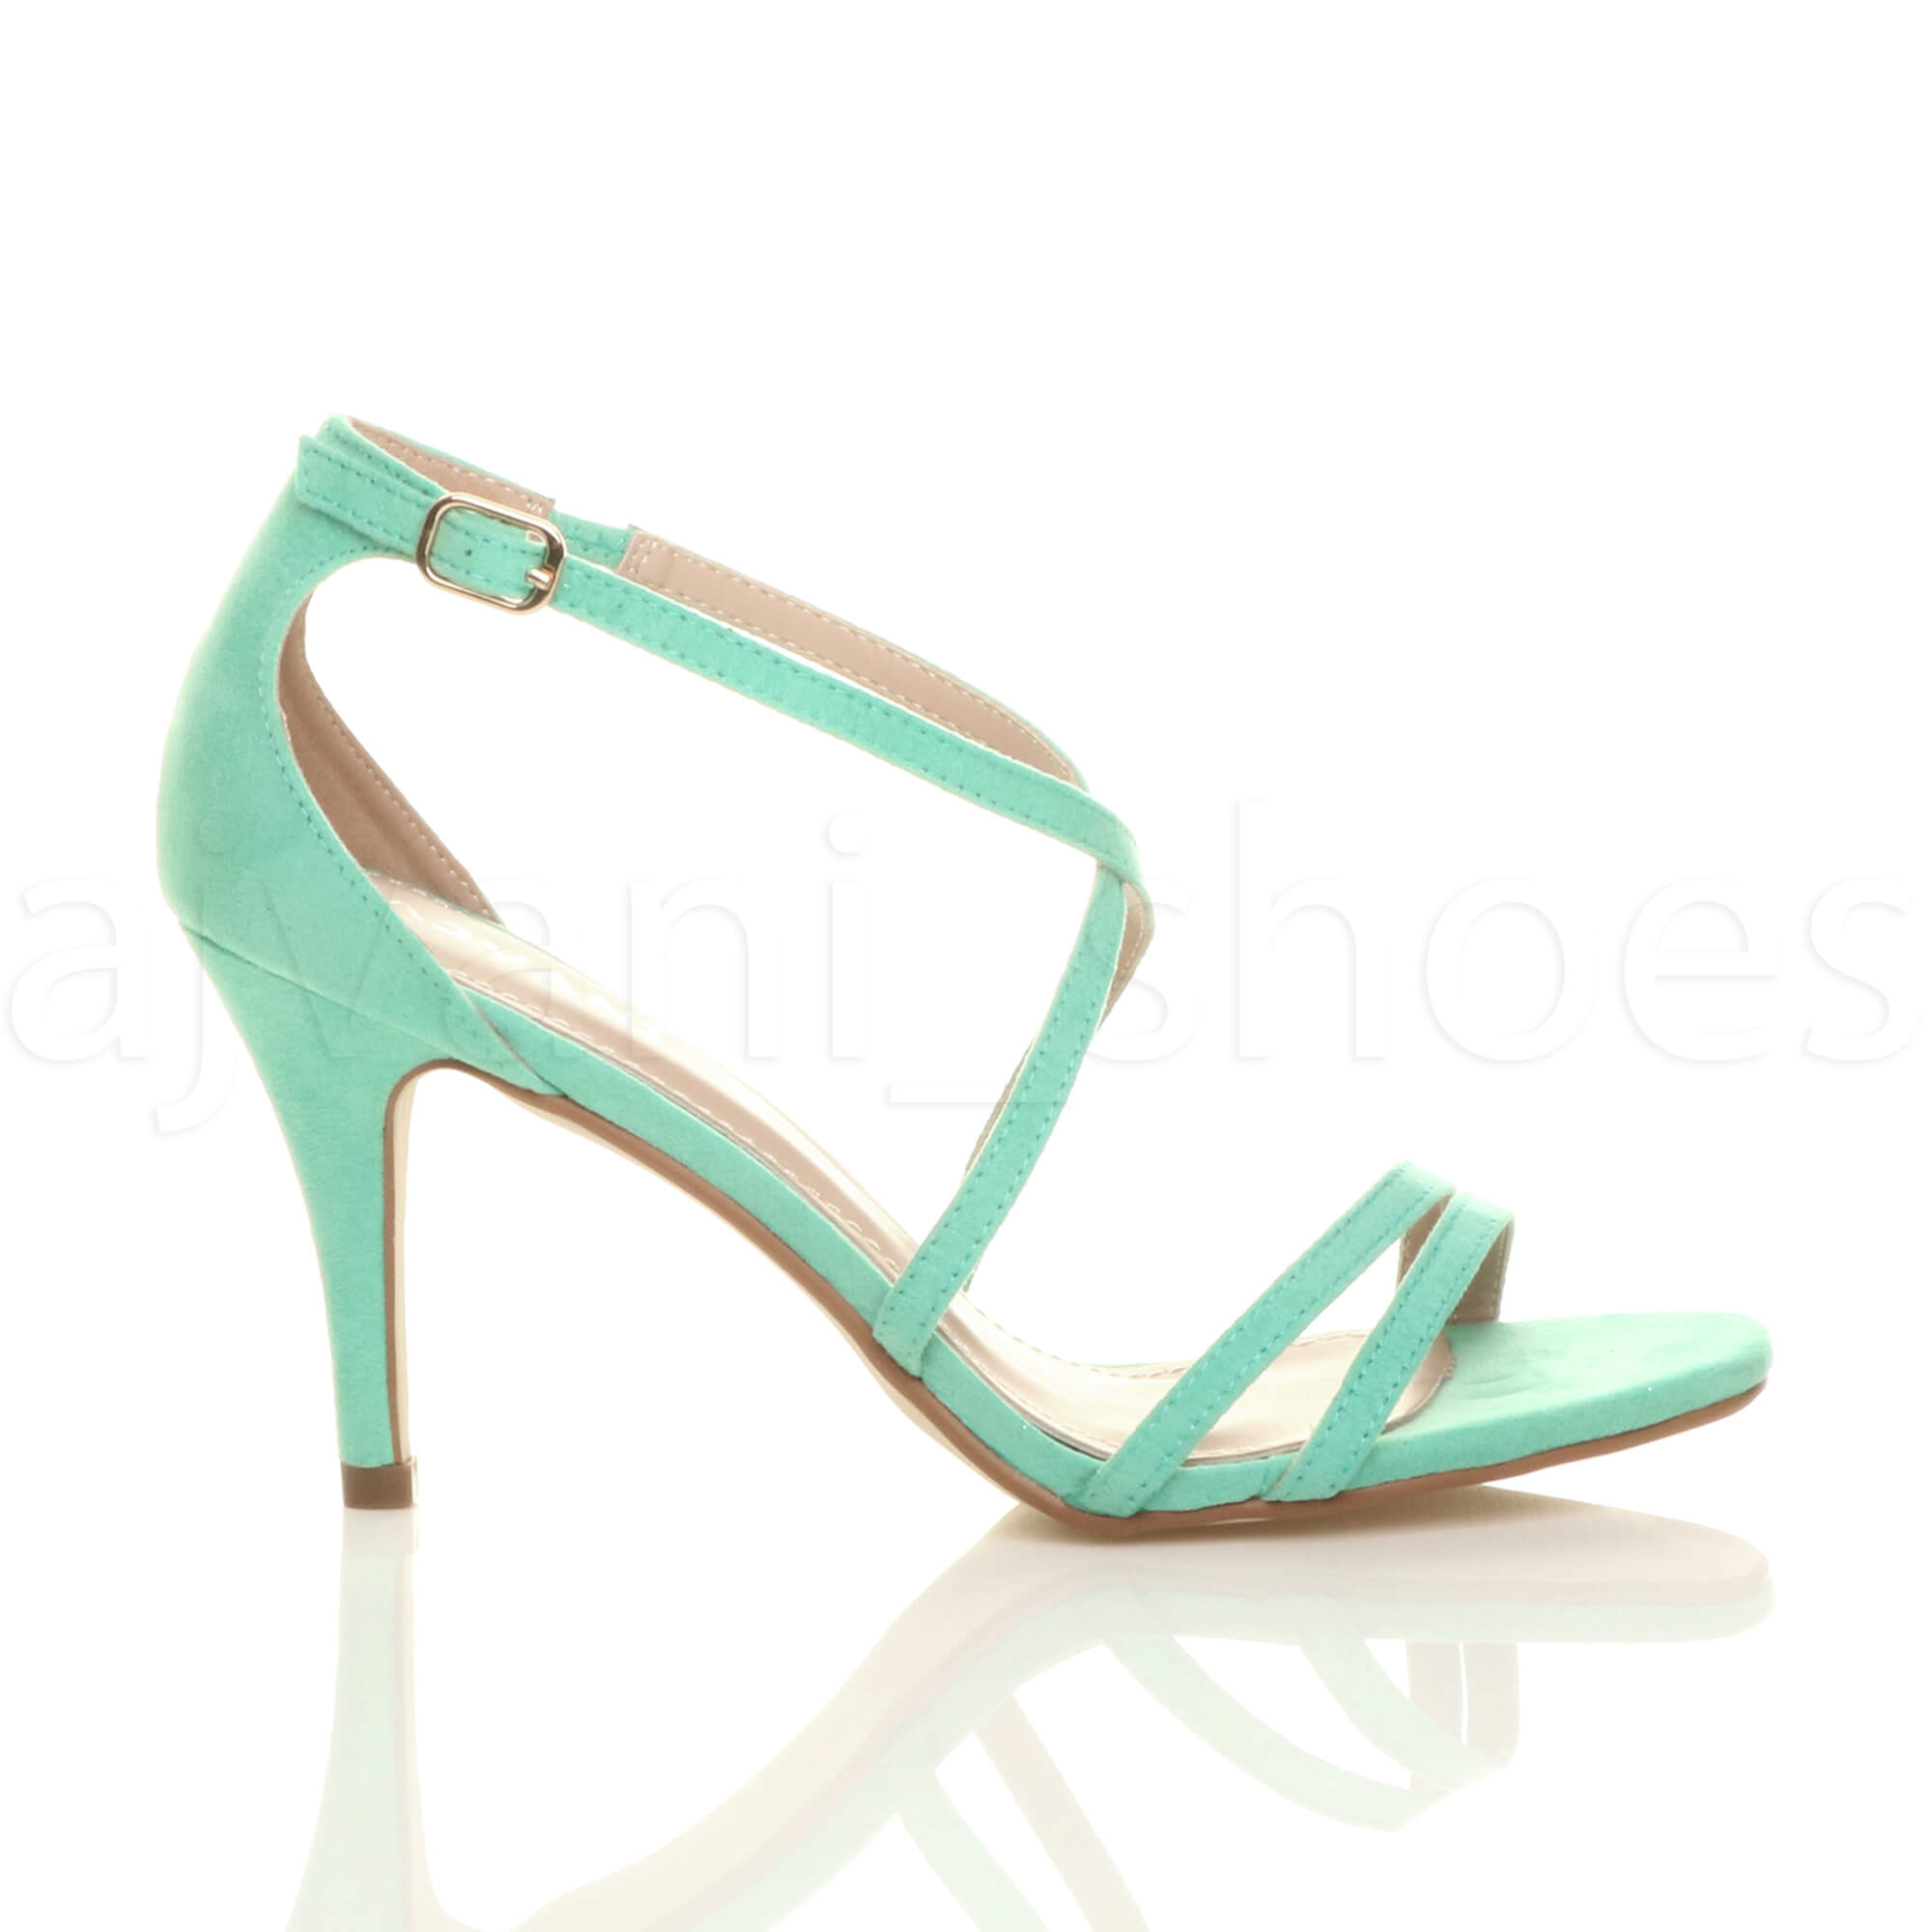 WOMENS-LADIES-MID-HIGH-HEEL-STRAPPY-CROSSOVER-WEDDING-PROM-SANDALS-SHOES-SIZE thumbnail 73